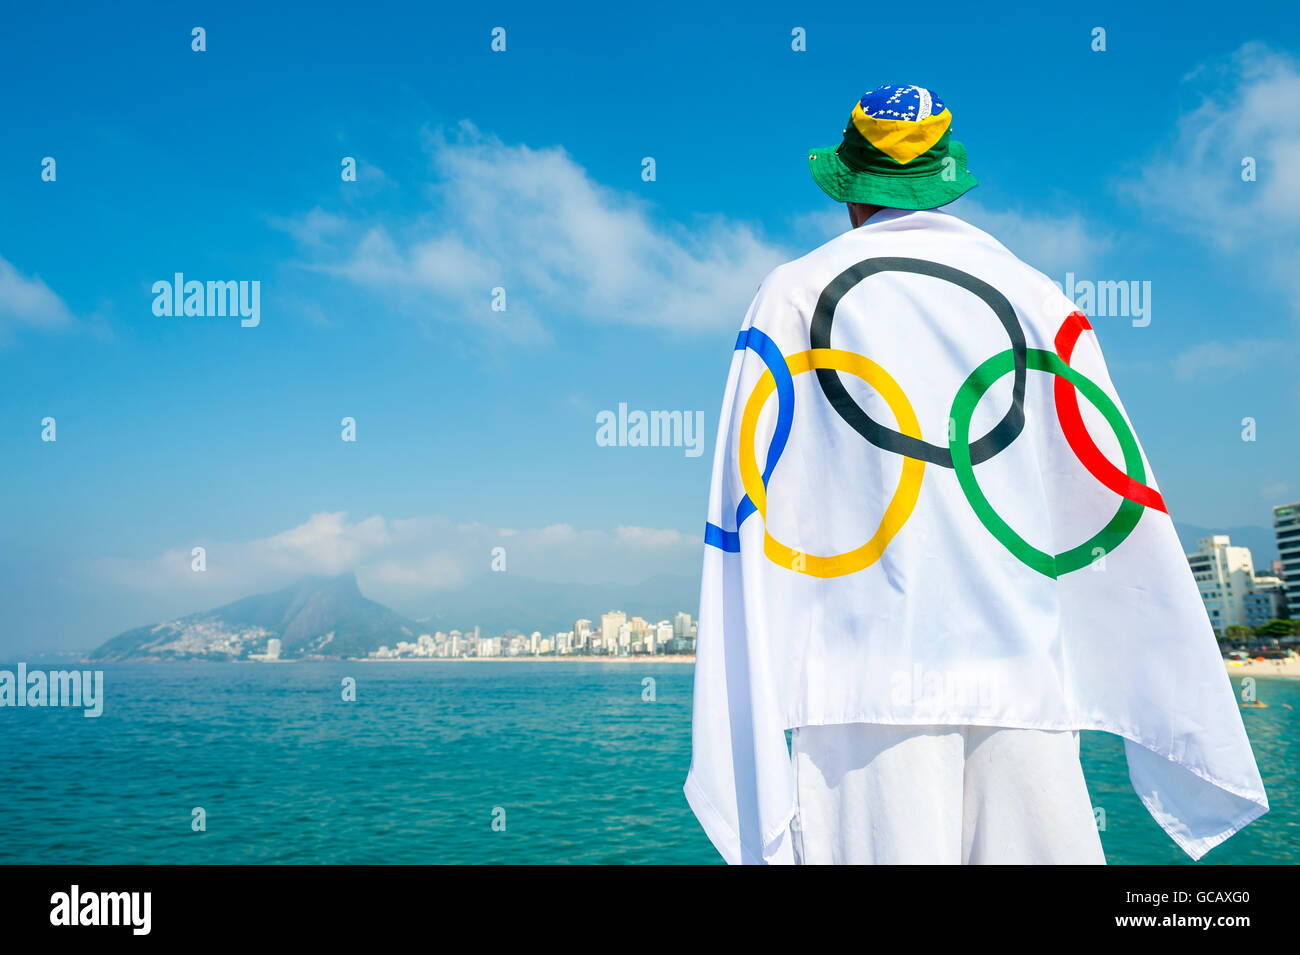 RIO DE JANEIRO - MARCH 27, 2016: Athlete draped in Olympic flag stands on the shore of Ipanema. - Stock Image